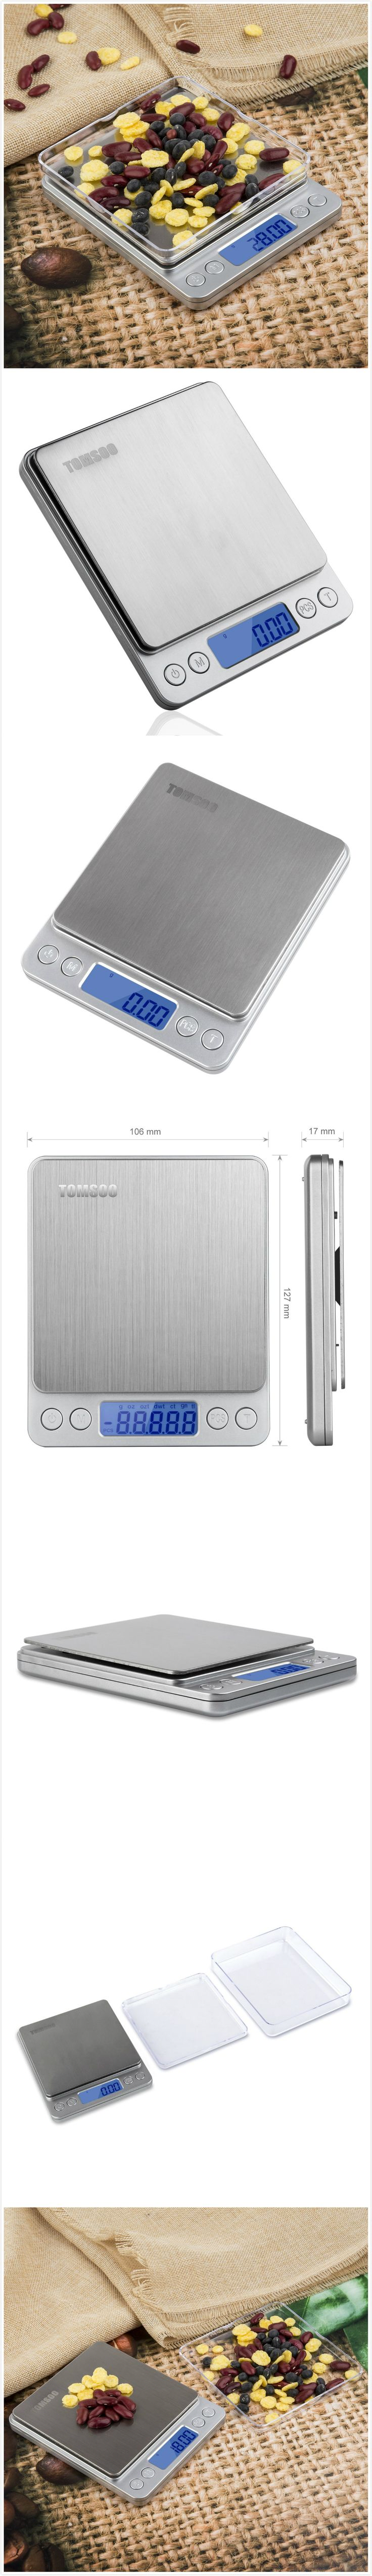 TOMSOO 0.01oz/0.1g 3kg Electronic Balance Digital LCD Display Pro Pocket Scale, Accuracy Kitchen Scale, Mini Food Scale, Auto Off and Back-lit, Tare & PCS Functions, Stainless Steel (Silver)